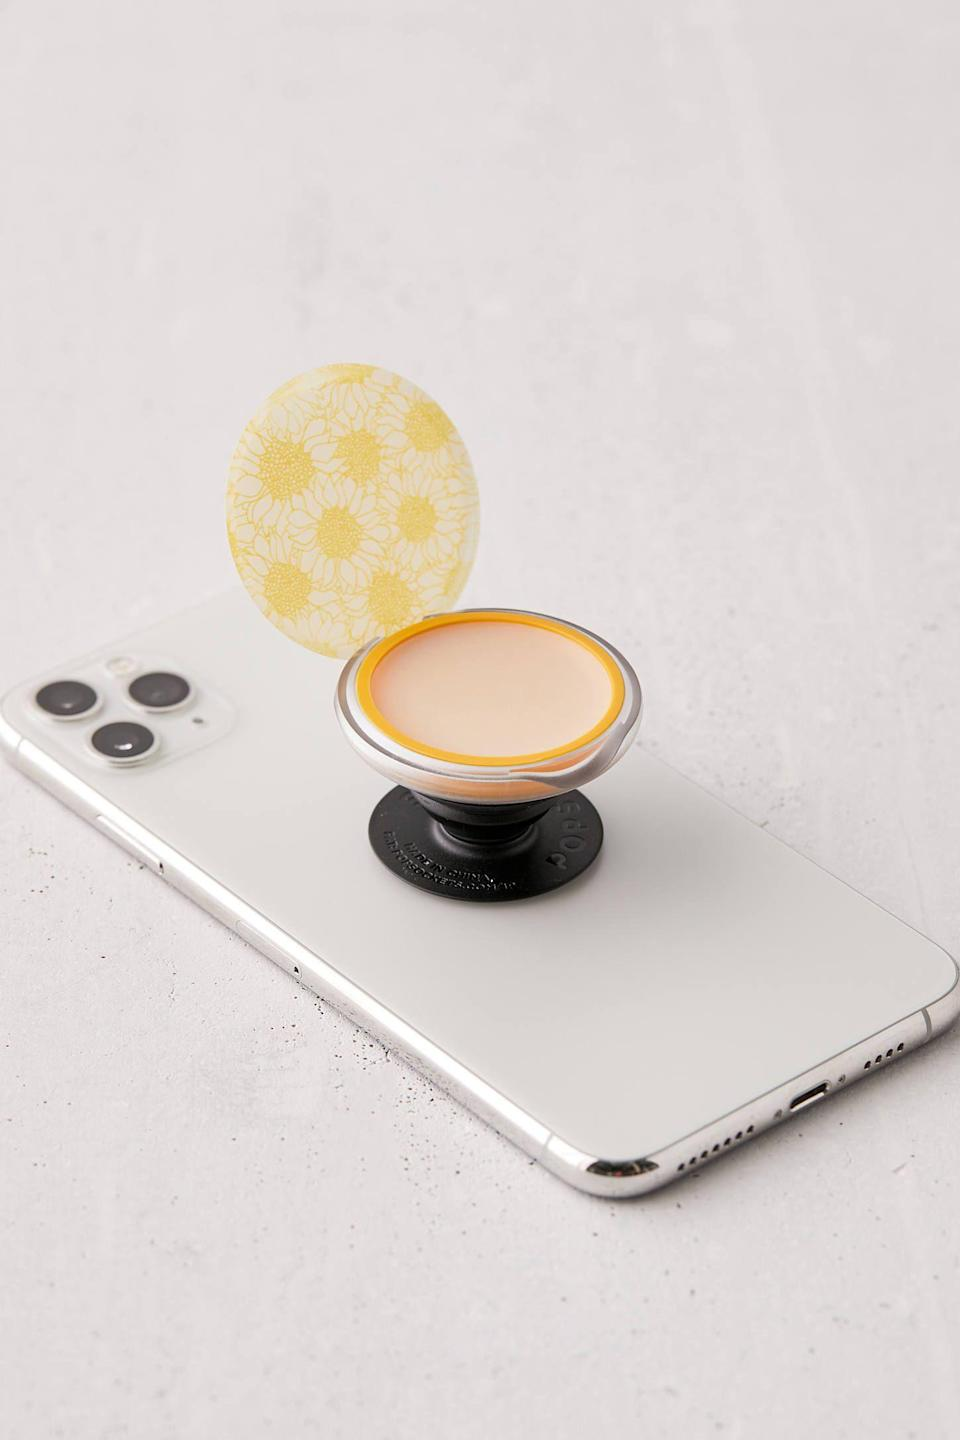 """<p><strong>PopSockets</strong></p><p>urbanoutfitters.com</p><p><strong>$20.00</strong></p><p><a href=""""https://go.redirectingat.com?id=74968X1596630&url=https%3A%2F%2Fwww.urbanoutfitters.com%2Fshop%2Fpopsockets-poplips-burts-bees-lip-balm-phone-stand&sref=https%3A%2F%2Fwww.countryliving.com%2Fshopping%2Fgifts%2Fg36340375%2Funique-graduation-gifts%2F"""" rel=""""nofollow noopener"""" target=""""_blank"""" data-ylk=""""slk:Shop Now"""" class=""""link rapid-noclick-resp"""">Shop Now</a></p><p>Pop Sockets always come in handy, and this one is even more useful. It holds a stash of Burt's Bees lip balm so she's never without.</p>"""